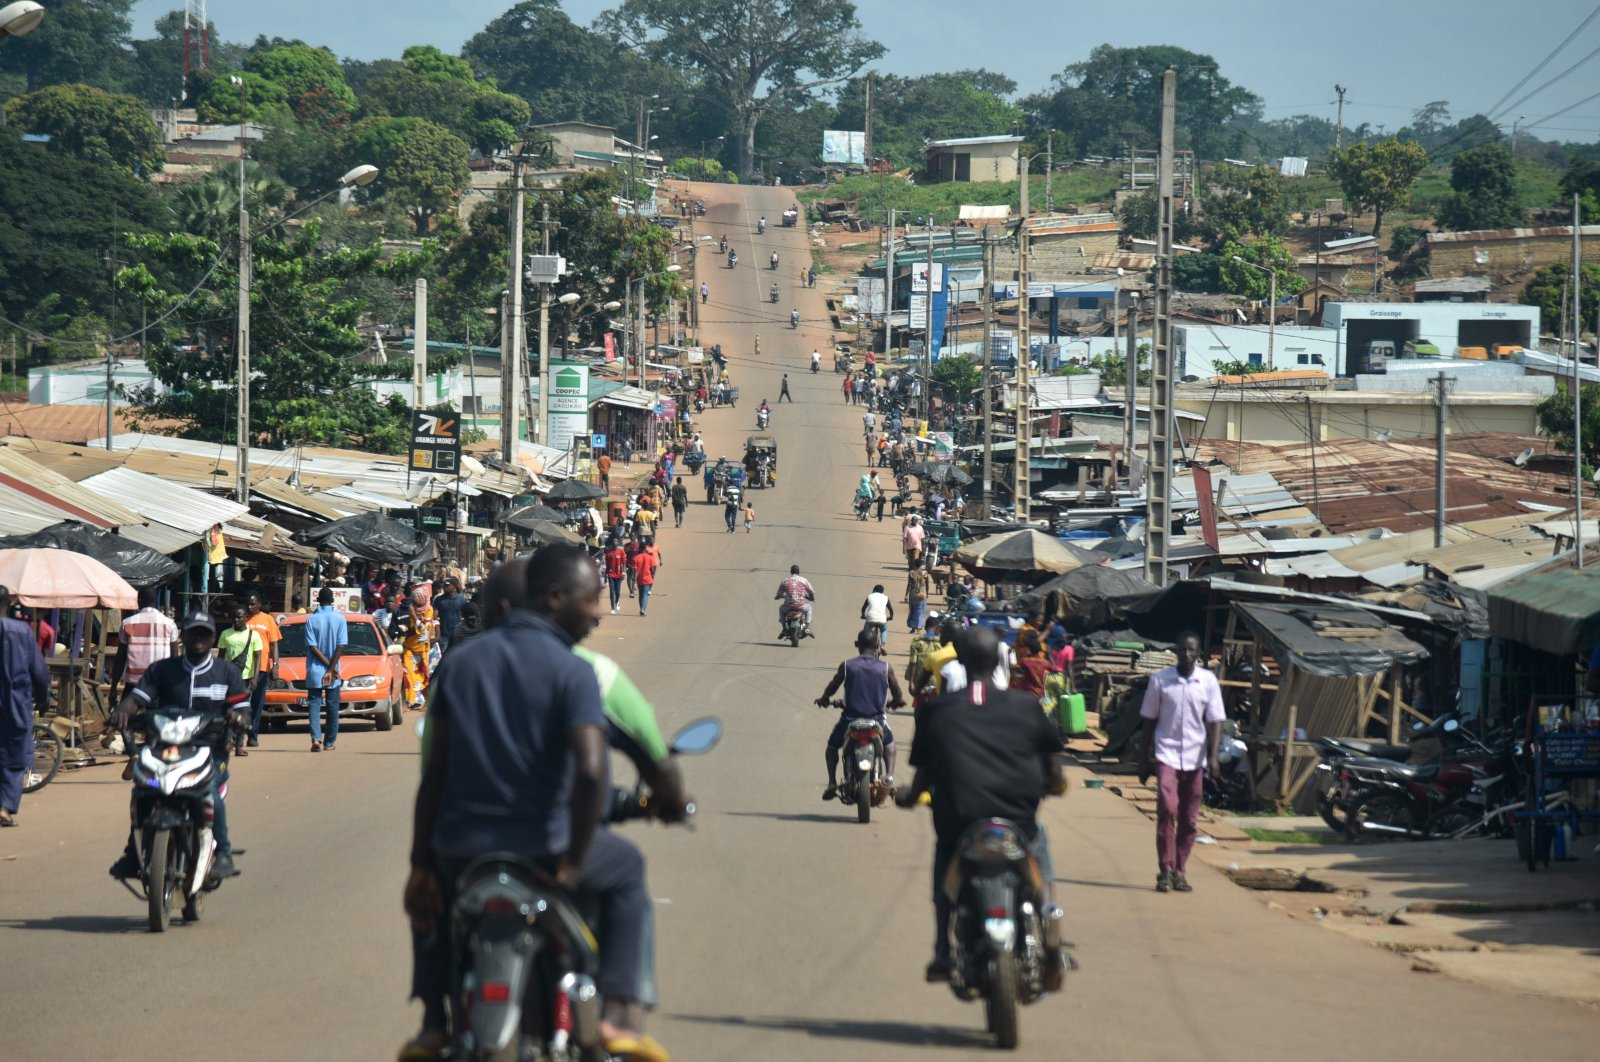 A general view of residents on a street in Daoukro, Ivory Coast on Nov. 3, 2020. (AFP Photo)